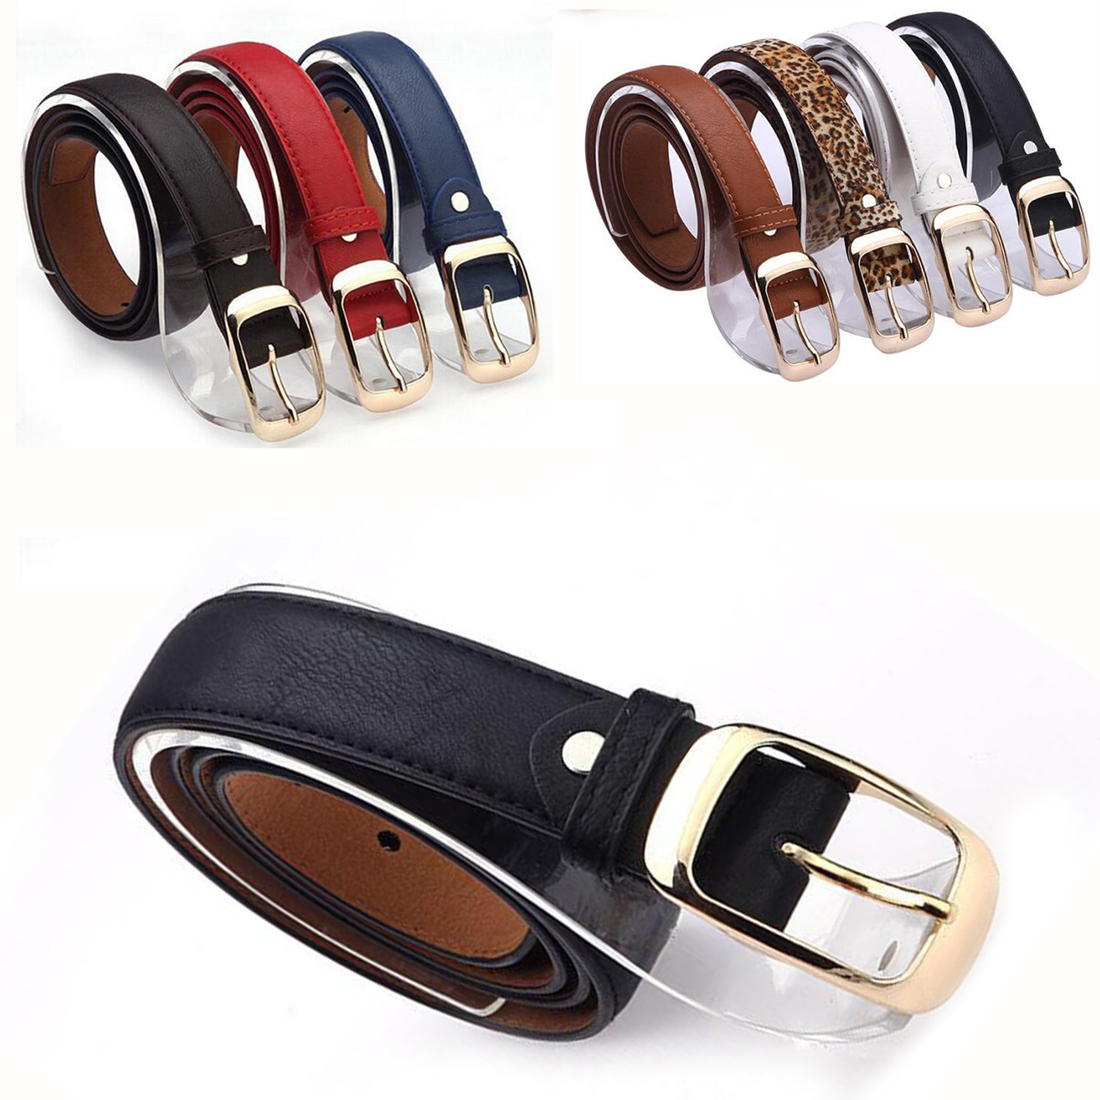 New 2018 Fashion Women Belt Ladies Faux Leather Gold Pin Metal Buckle Straps Girls Ceinture Wild Lady Hot